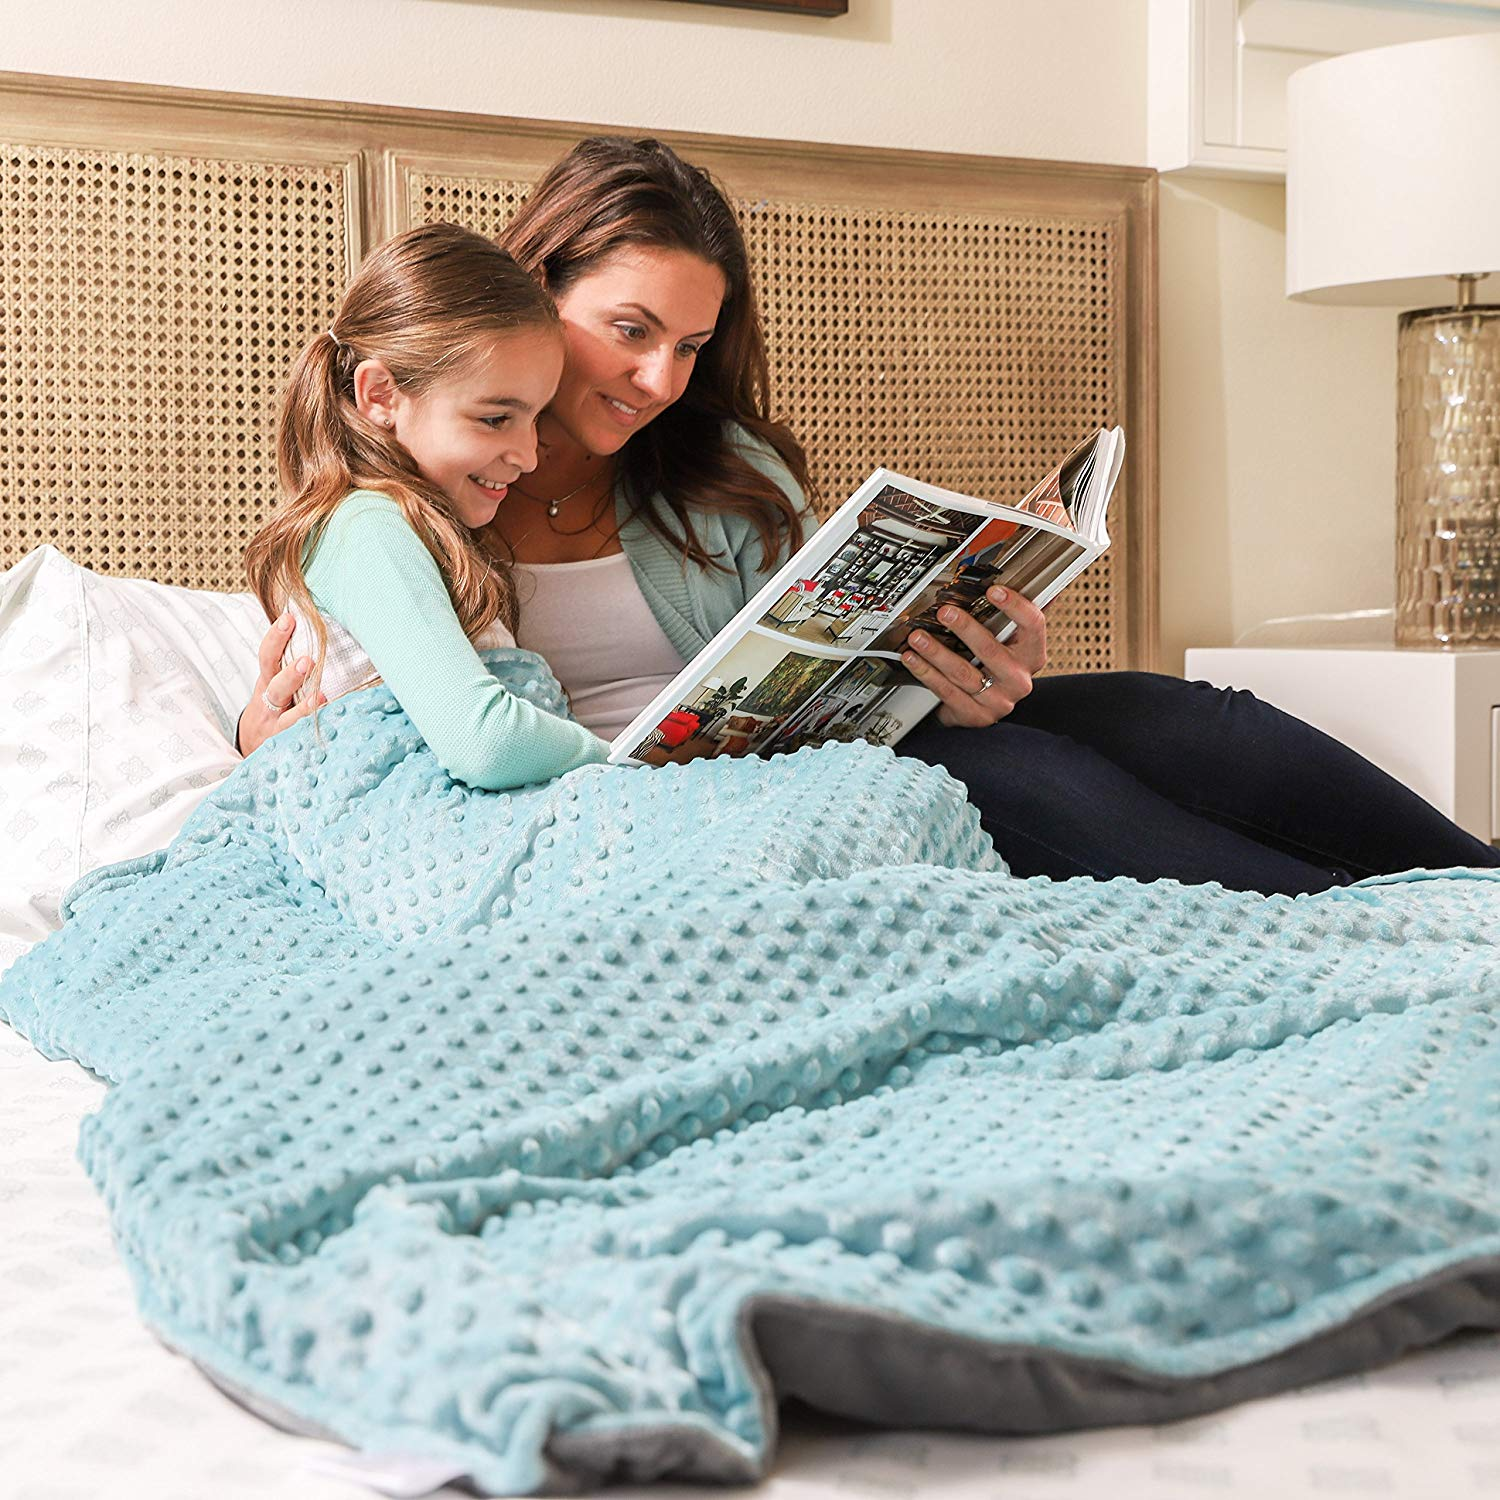 Weighted blanket for stress relief, anxiety and a great night's sleep #ad